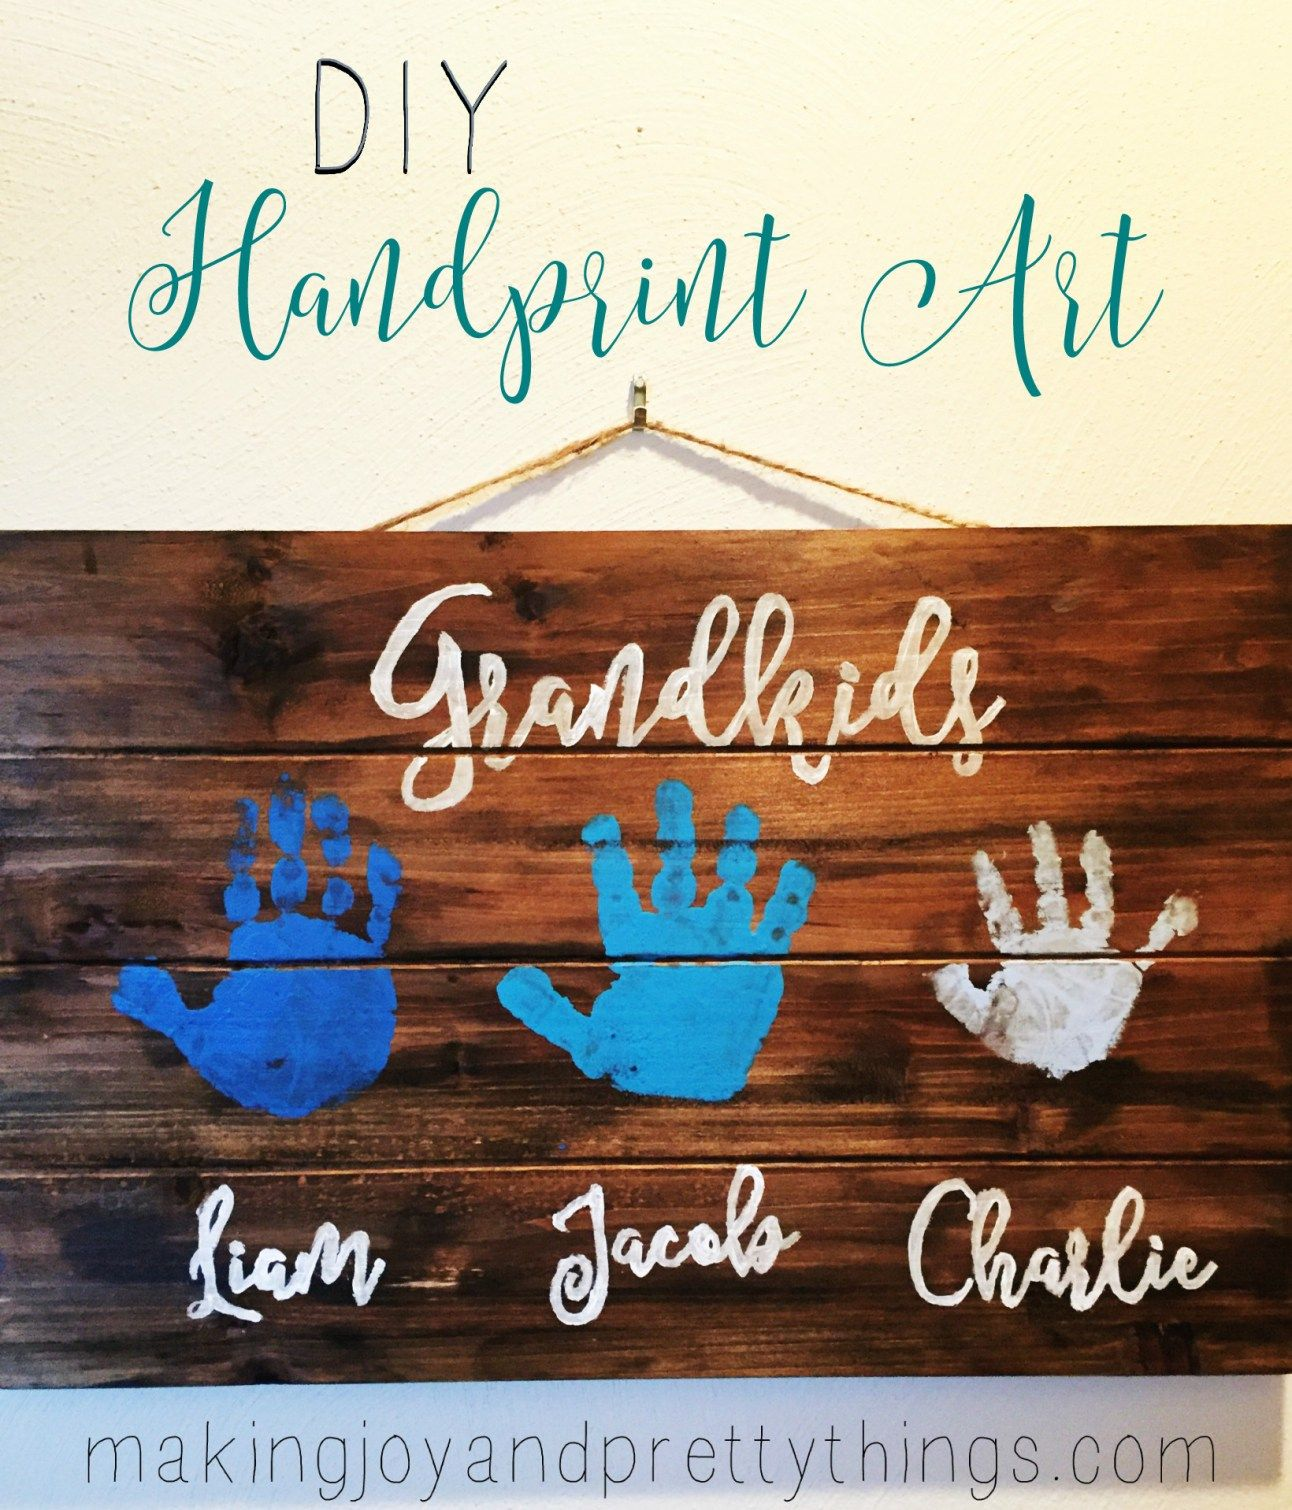 Quick And Easy Diy Handprint Art Perfect For Grandparents And